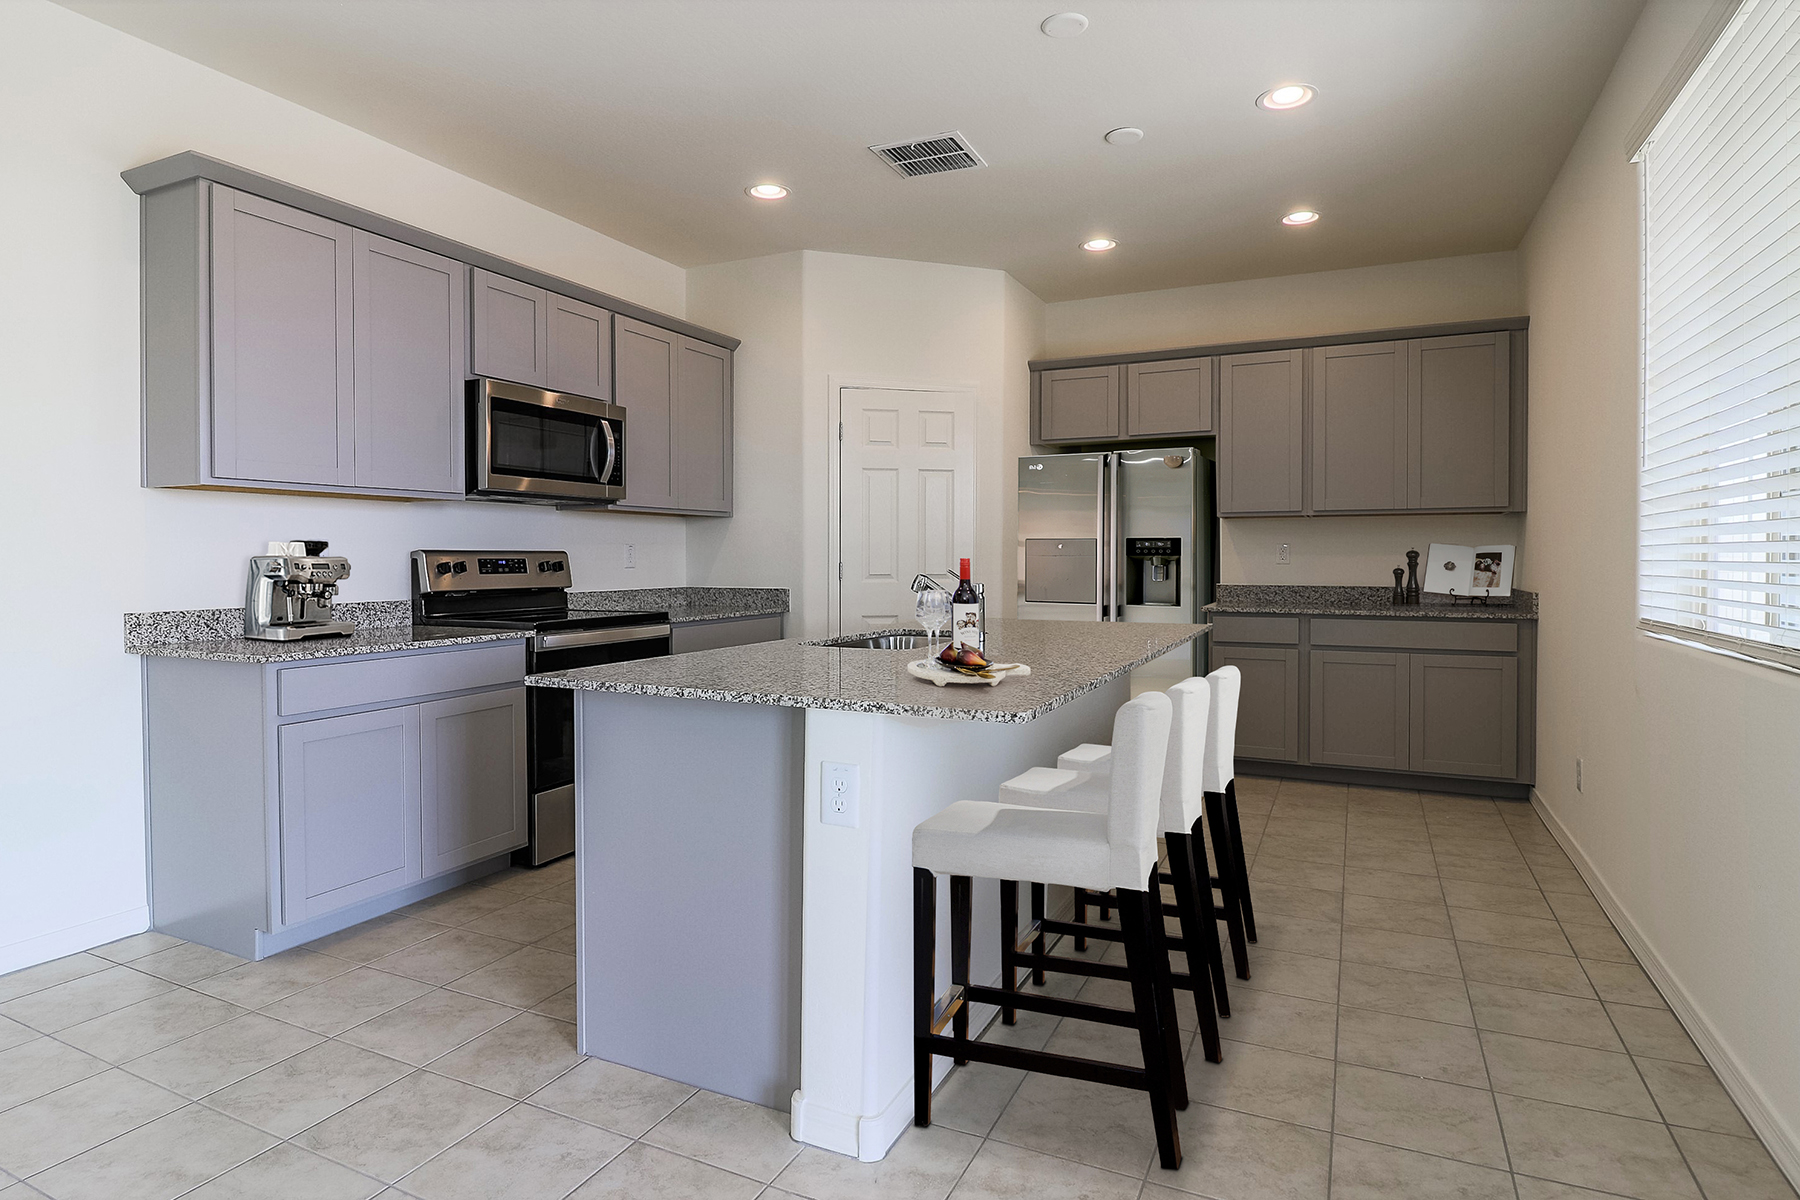 Brookside at Arroyo Seco Kitchen in Buckeye Arizona by Mattamy Homes